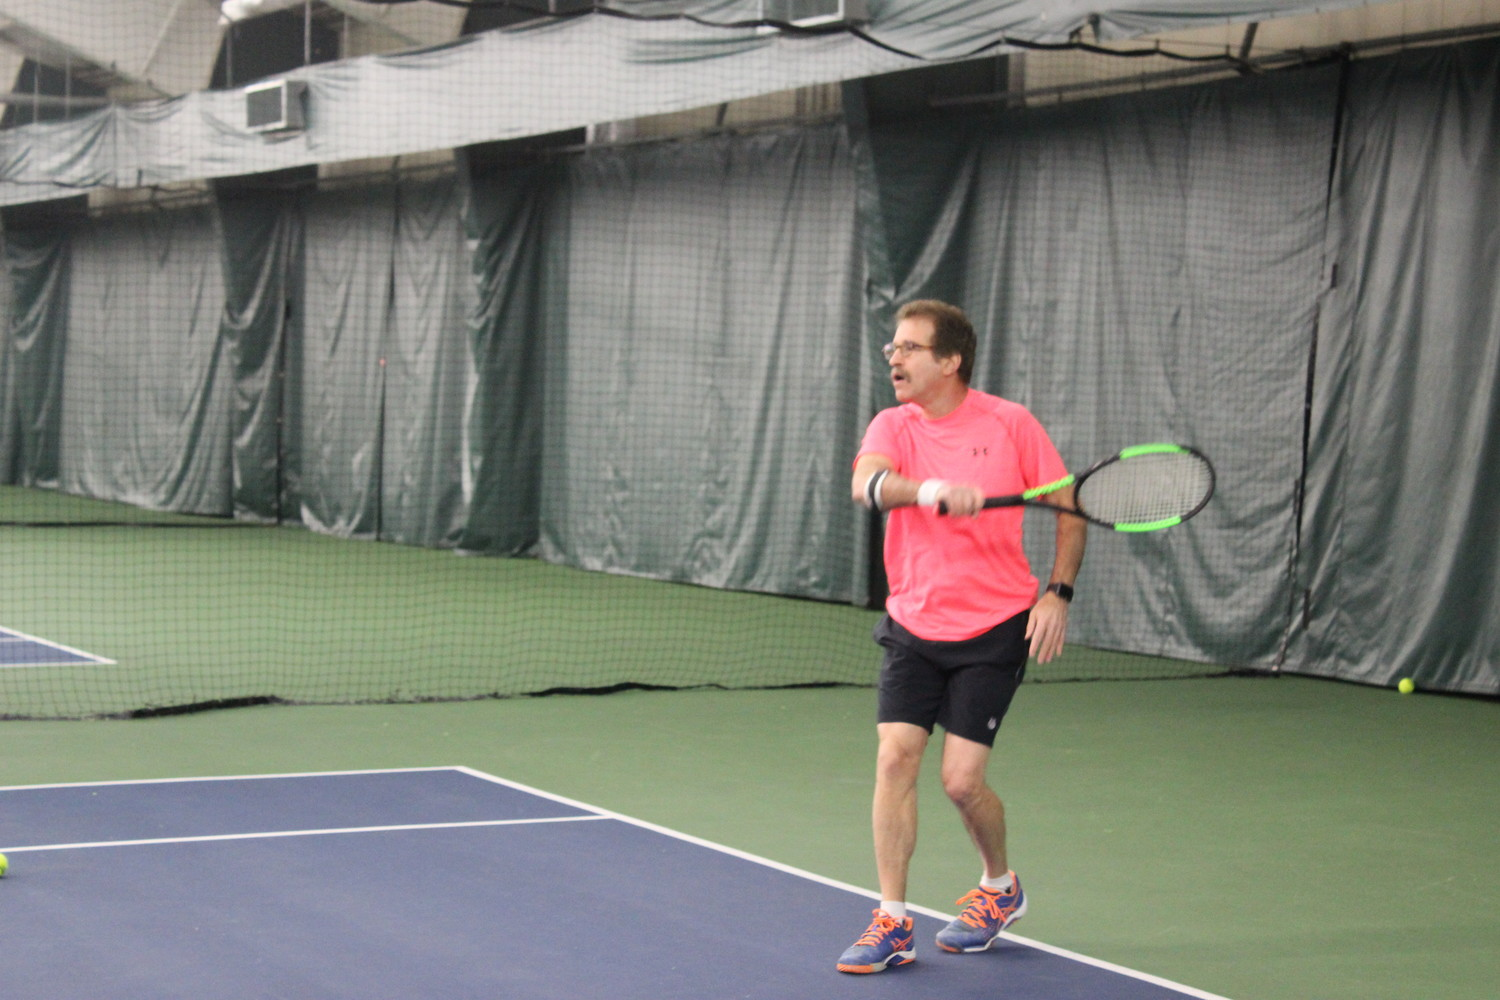 Steven Sussman travels from Roslyn for his routine practices with Ben Marks at Carefree Racquet Club.